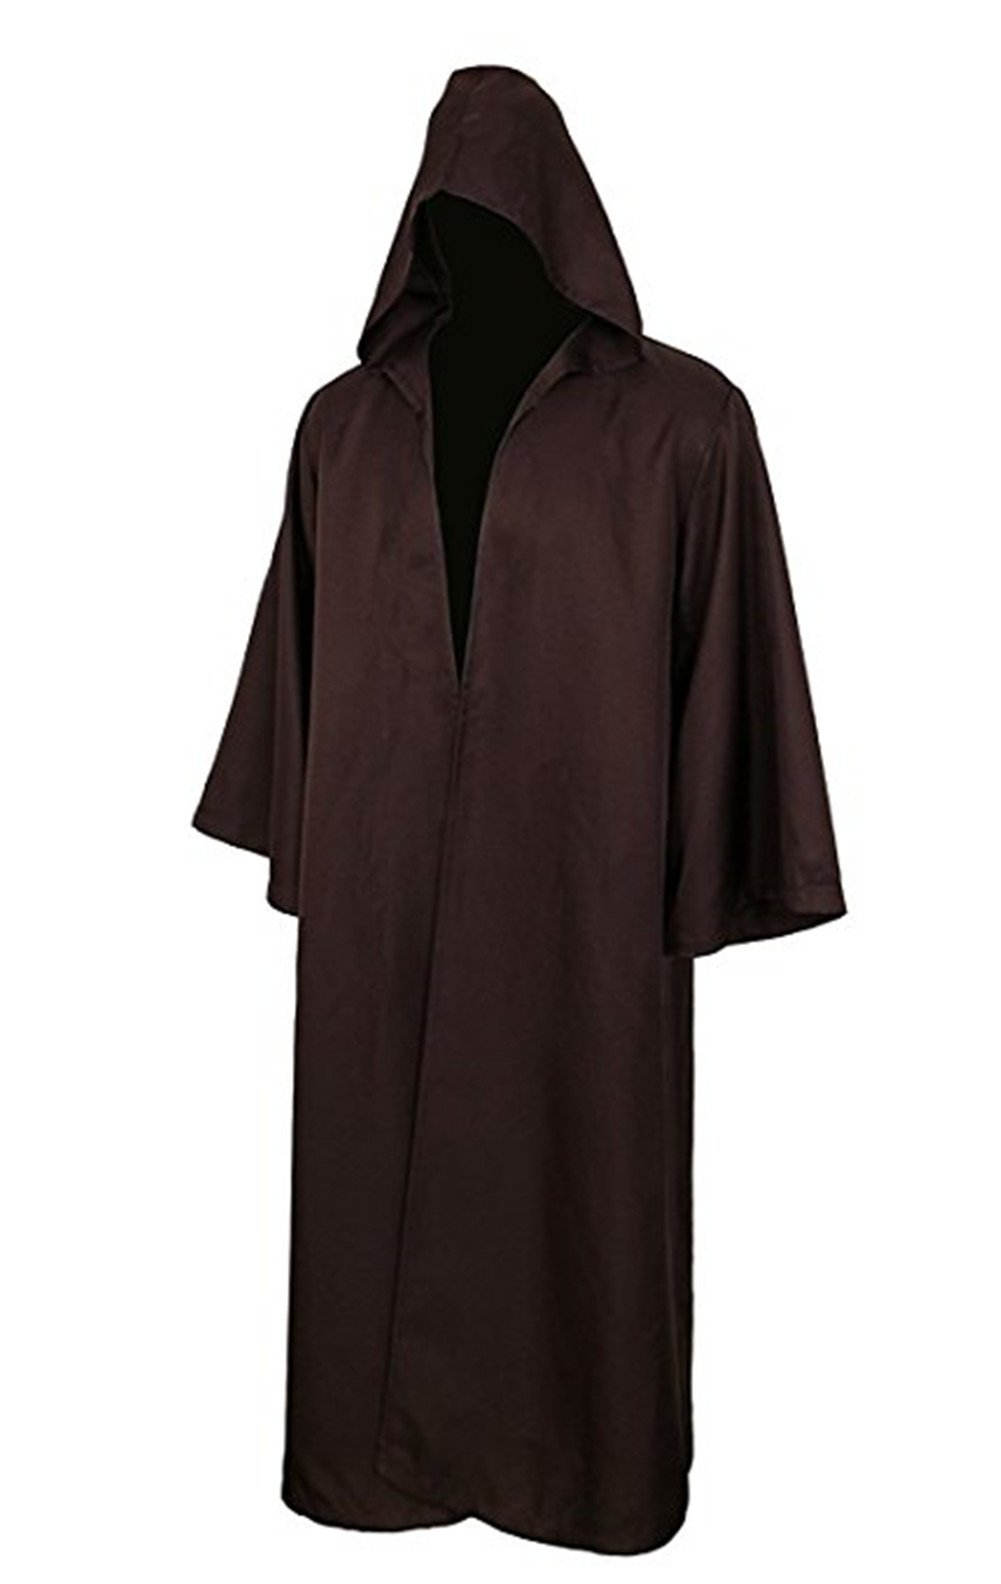 COSFLY Men's Tunic Hooded Robe Halloween Party Cosplay Costume Adult Knight Cool Robe Cloak Cape (XX-Large, Brown)